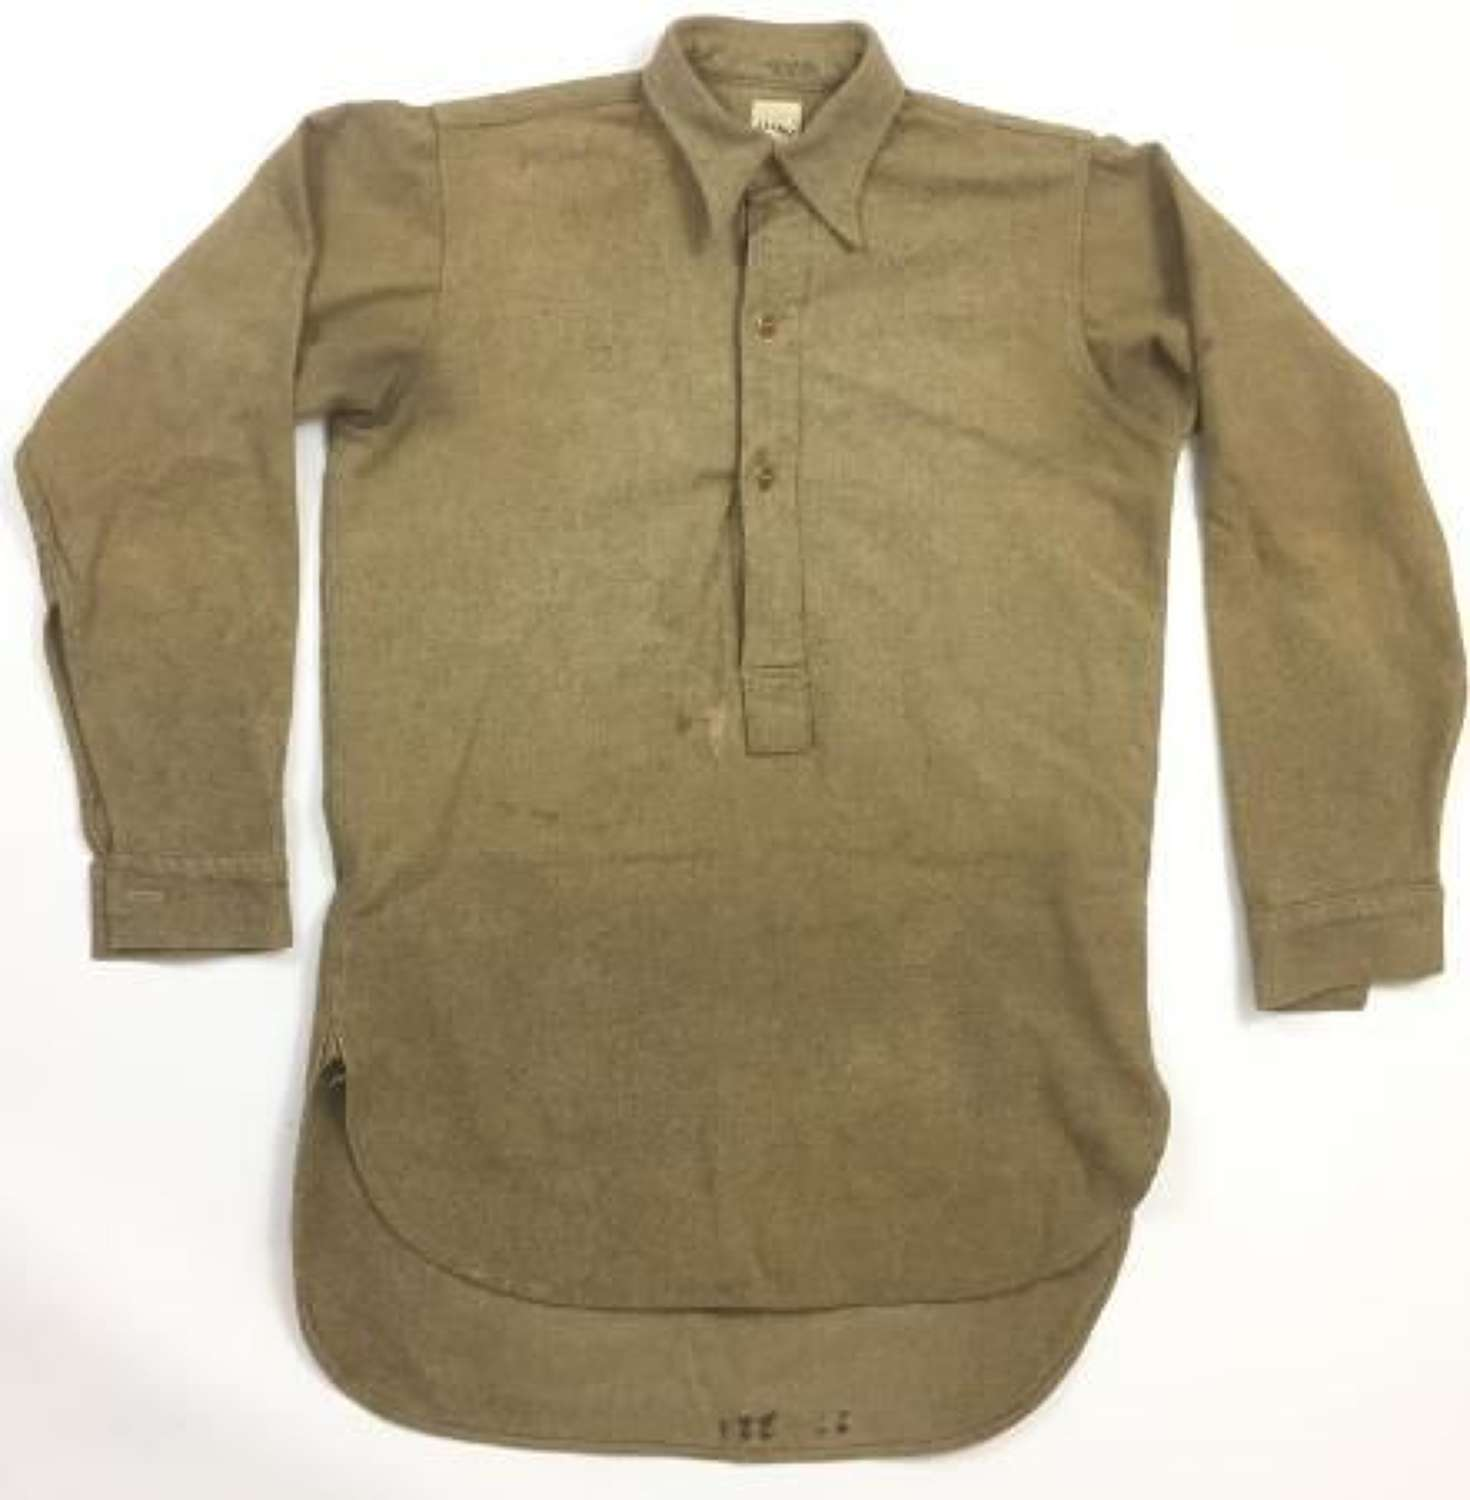 1947 Dated British Army Collared Shirt by 'Kenunex'